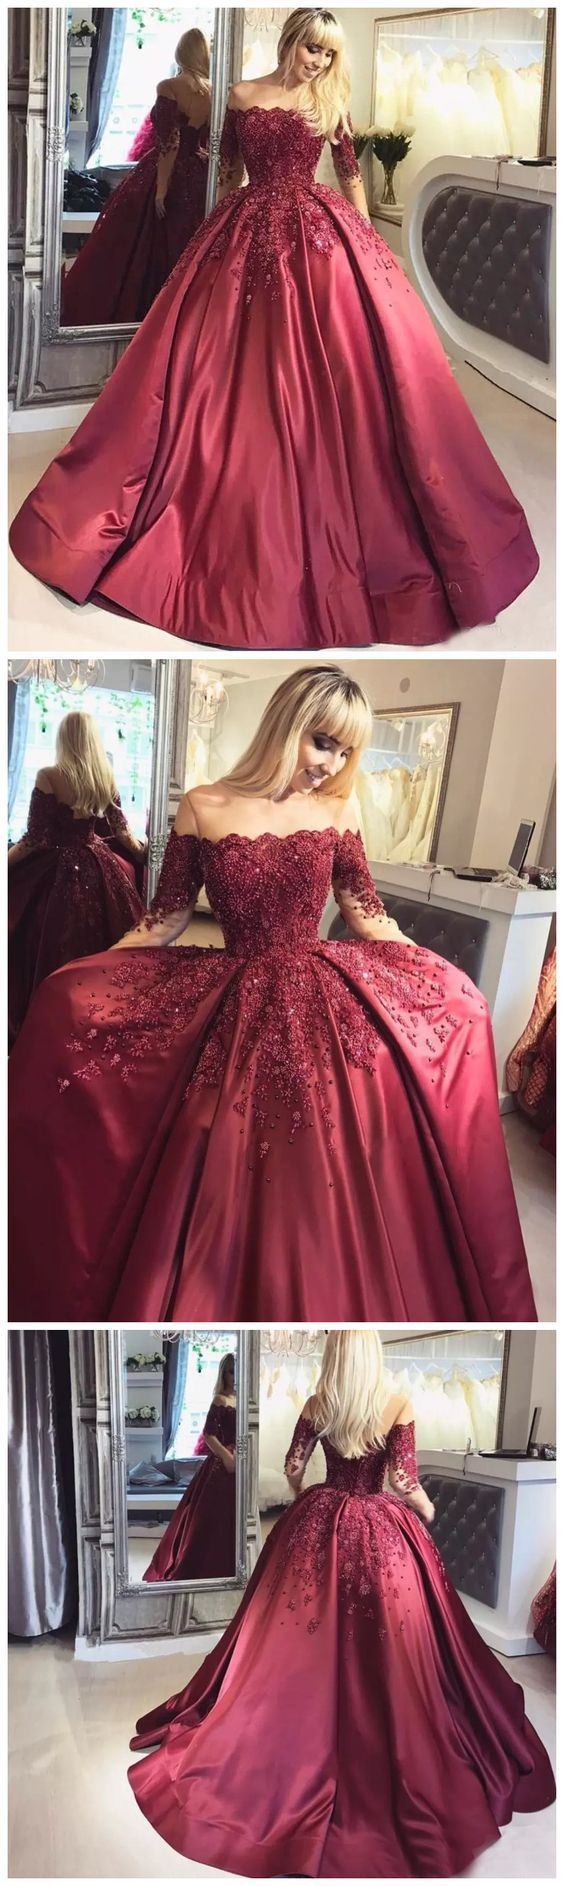 prom dresses long,prom dresses ball gown,prom dresses with #promdresses #fashion #shopping #dresses #eveningdresses #red